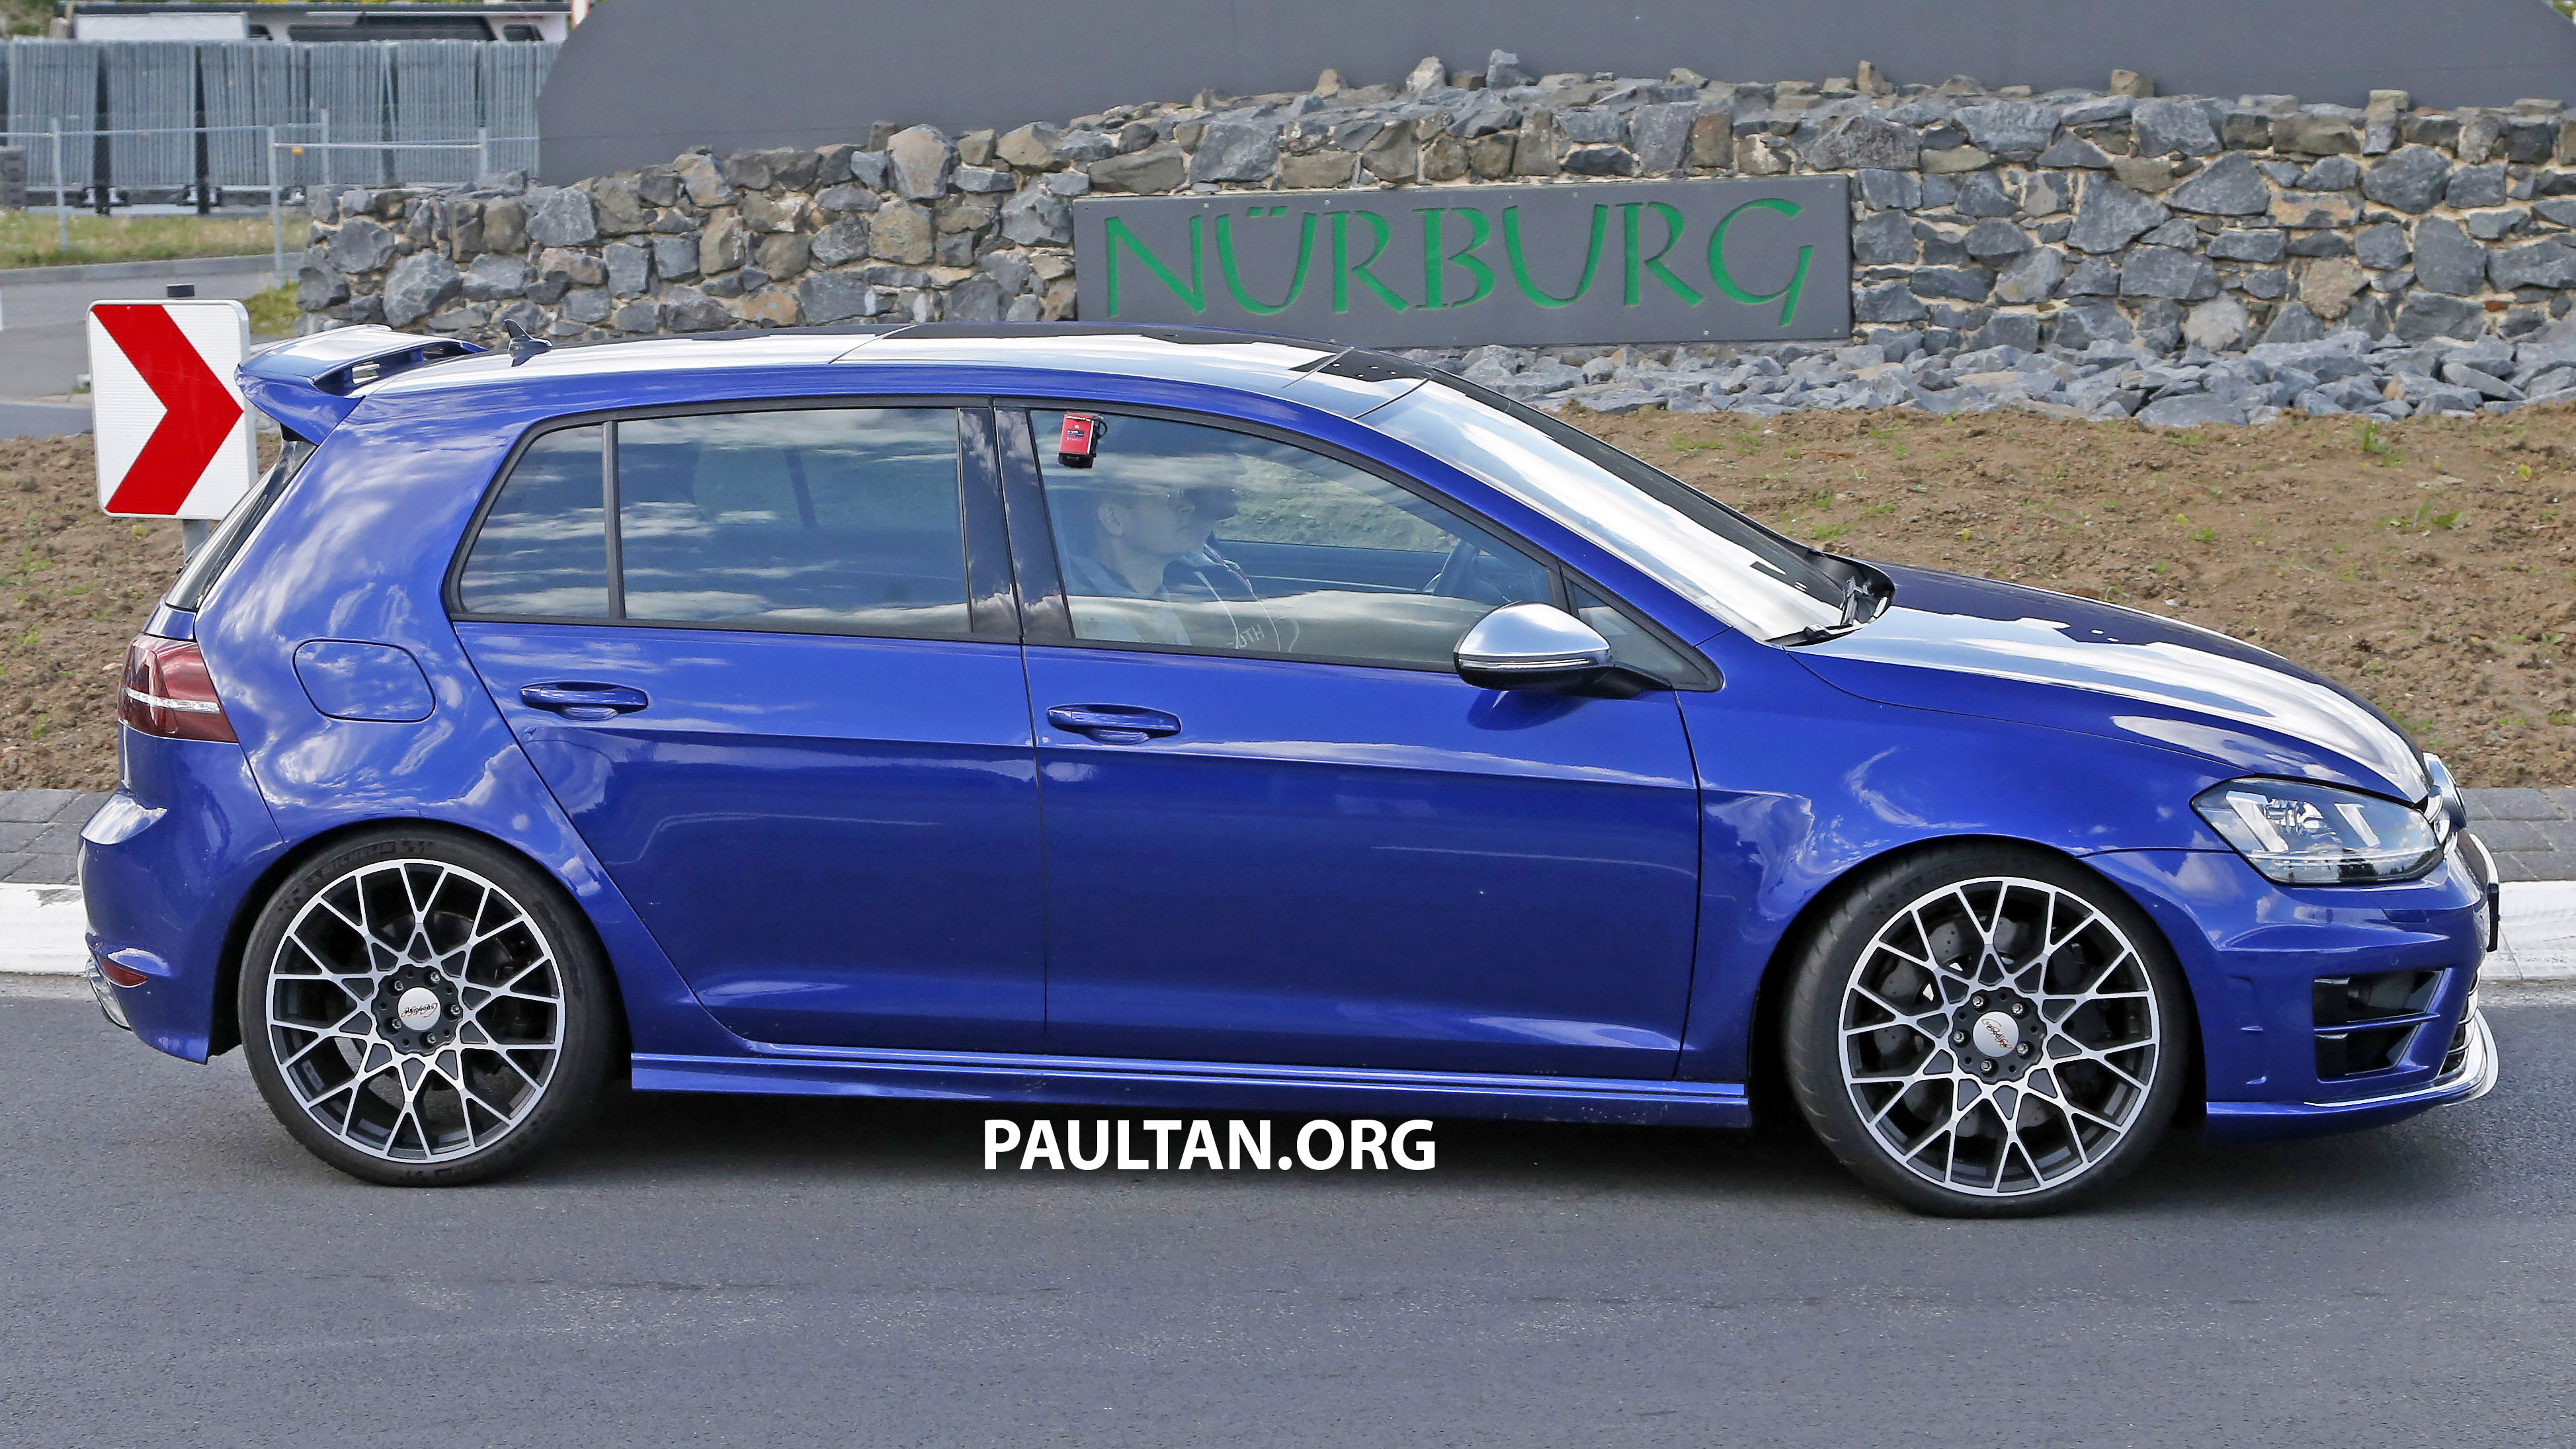 SPIED: Volkswagen Golf R 400 caught at the 'Ring Paul Tan ...